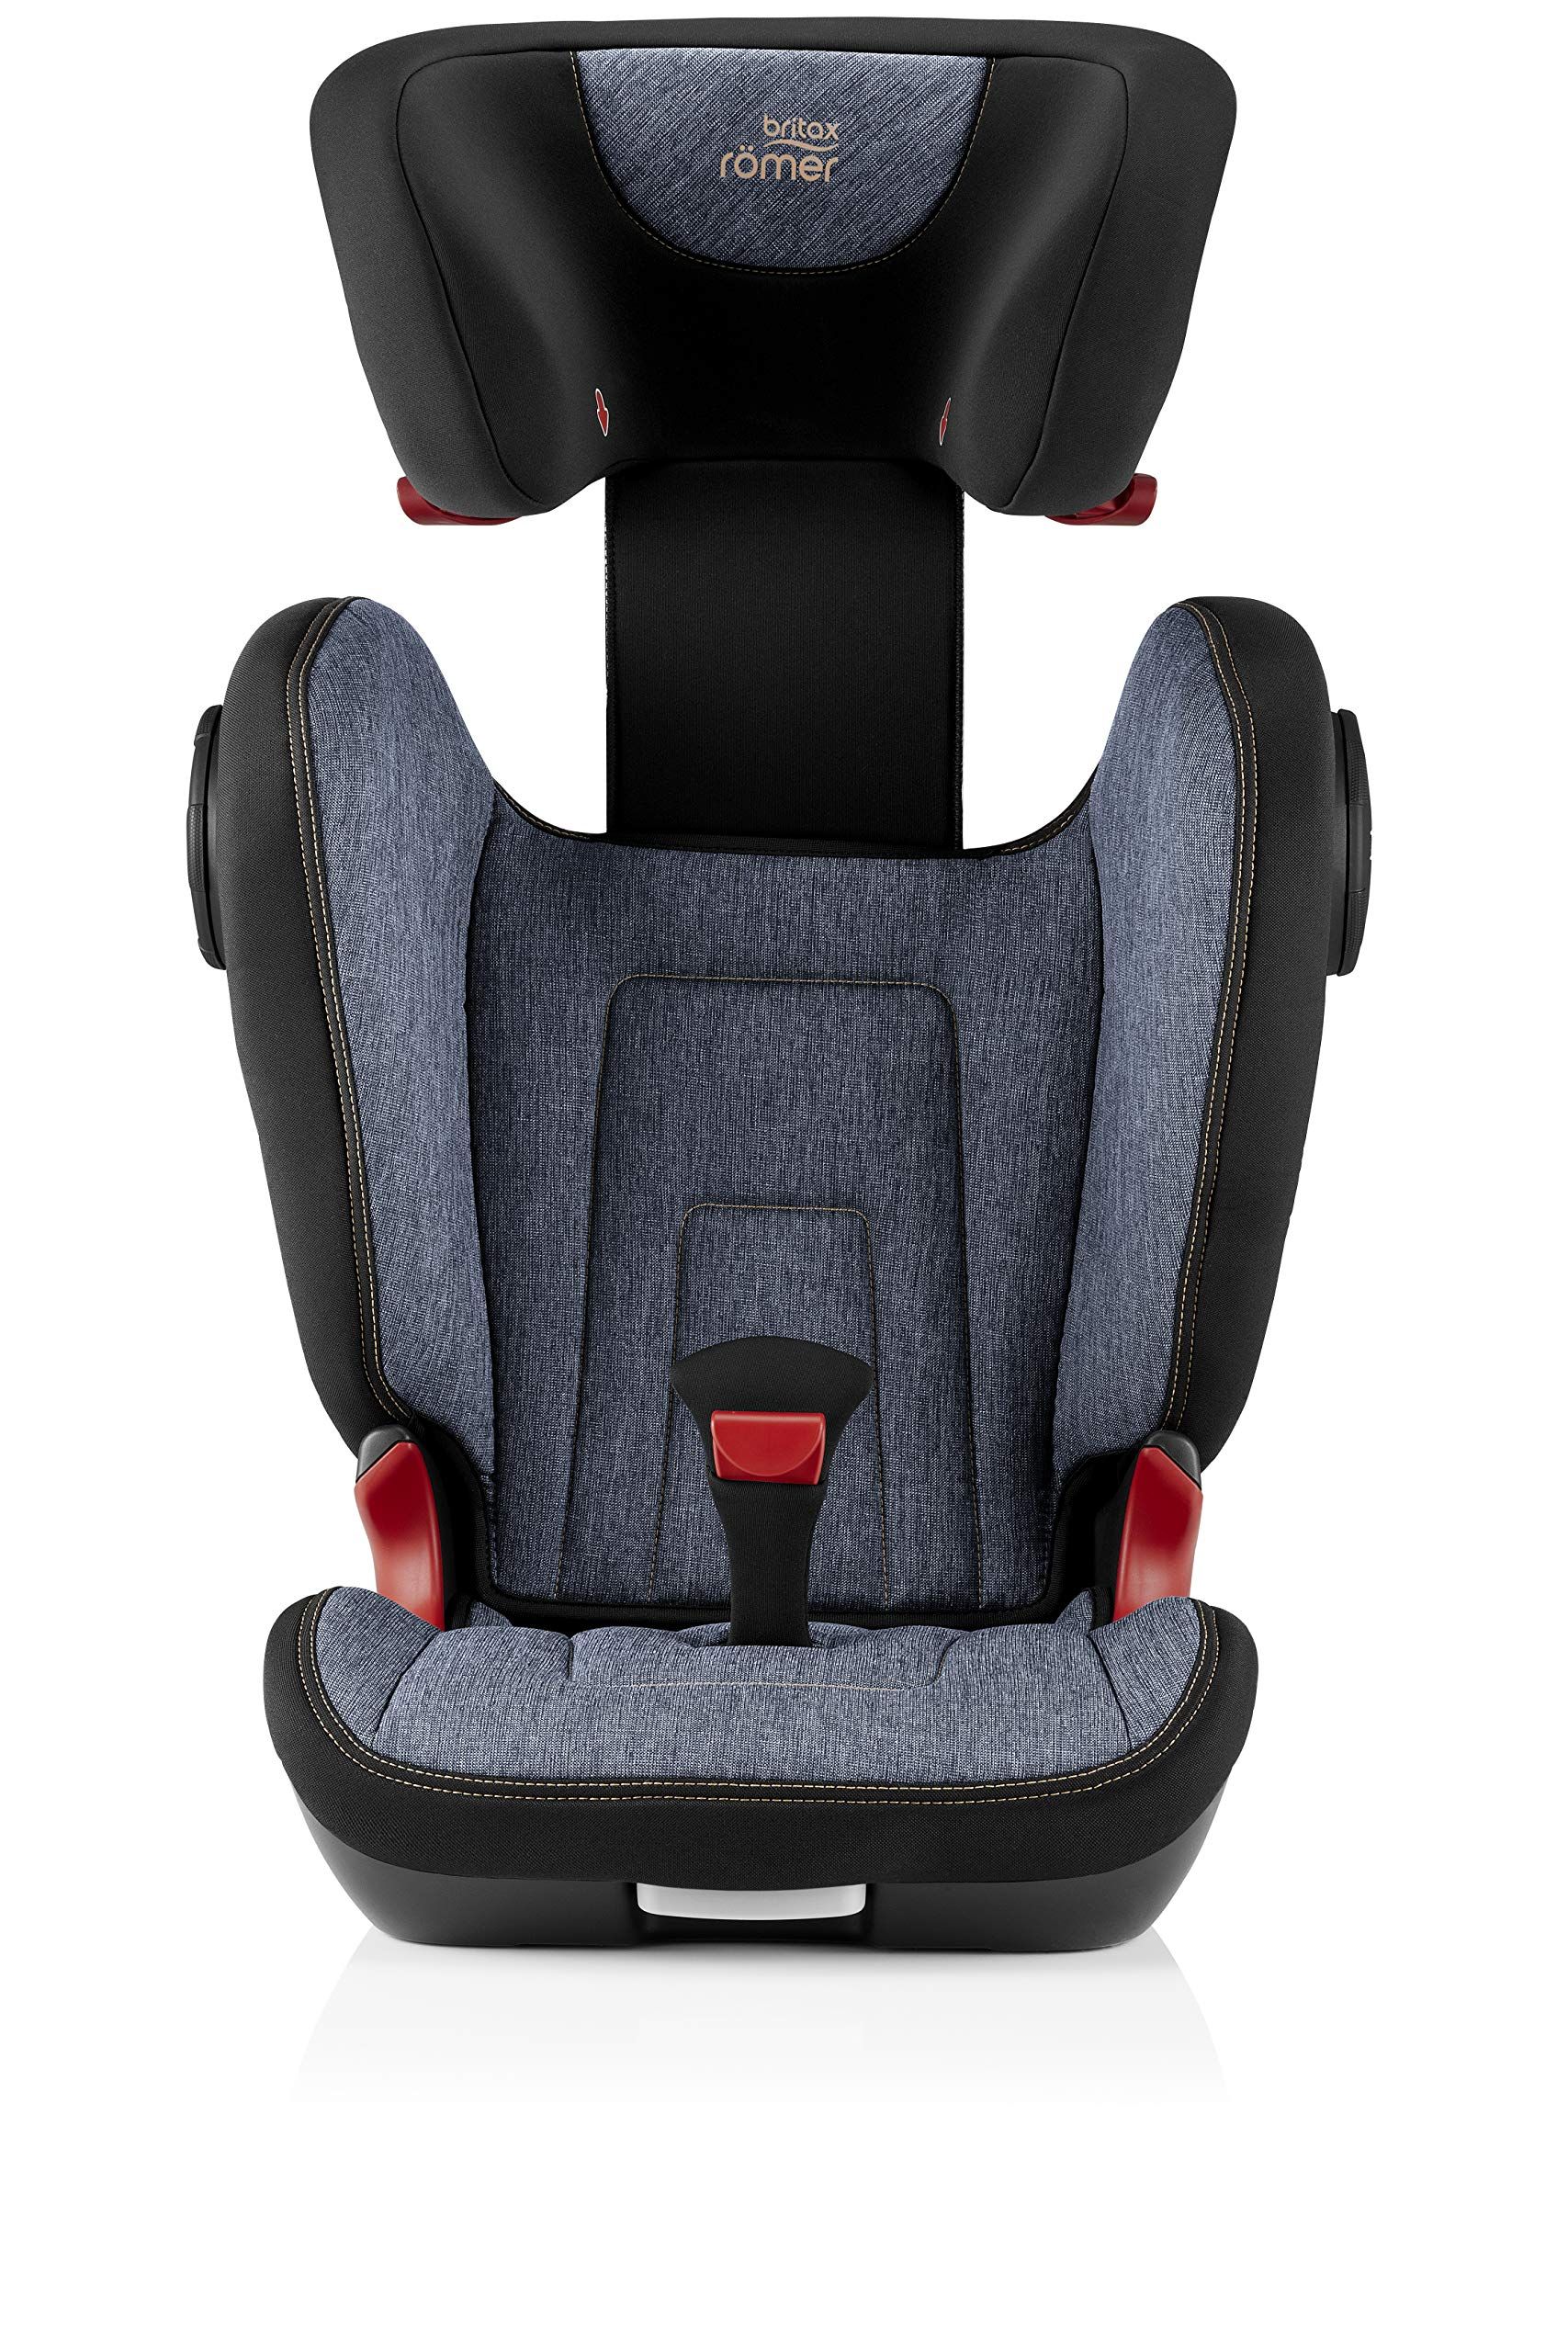 Britax Römer KIDFIX² S Group 2-3 (15-36kg) Car Seat - Blue Marble Britax Römer Advanced side impact protection - sict offers superior protection to your child in the event of a side collision. reducing impact forces by minimising the distance between the car and the car seat. Secure guard - helps to protect your child's delicate abdominal area by adding an extra - a 4th - contact point to the 3-point seat belt. High back booster - protects your child in 3 ways: provides head to hip protection; belt guides provide correct positioning of the seat belt and the padded headrest provides safety and comfort. 7